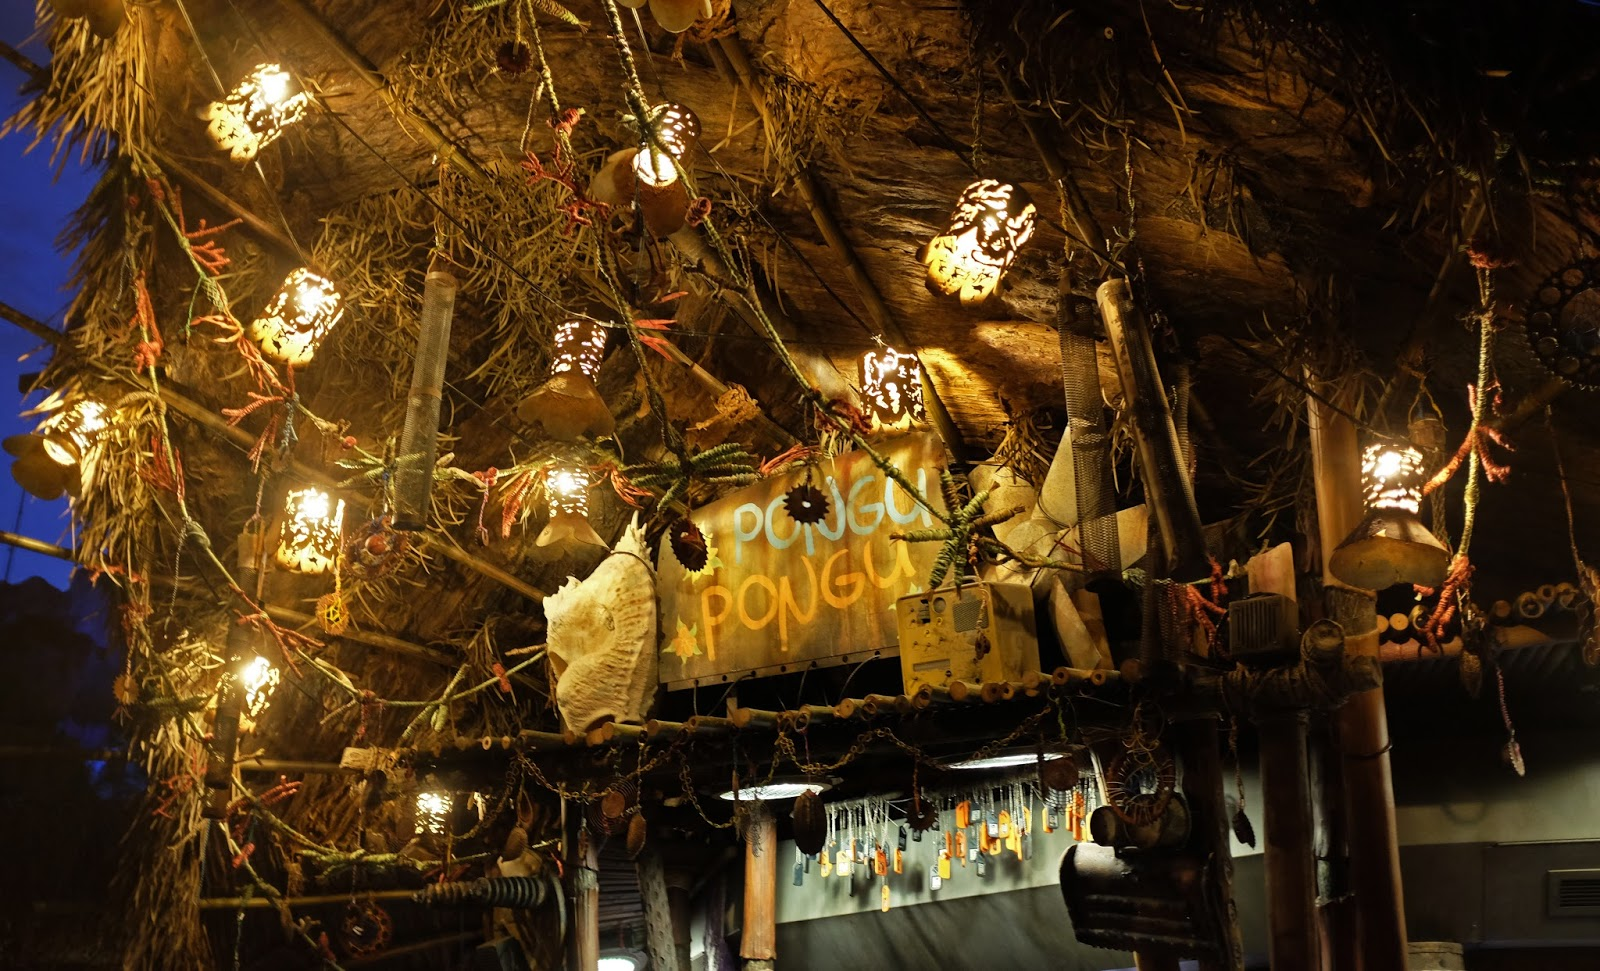 Pongu Pongu drinks stall at Pandora - The World of Avatar